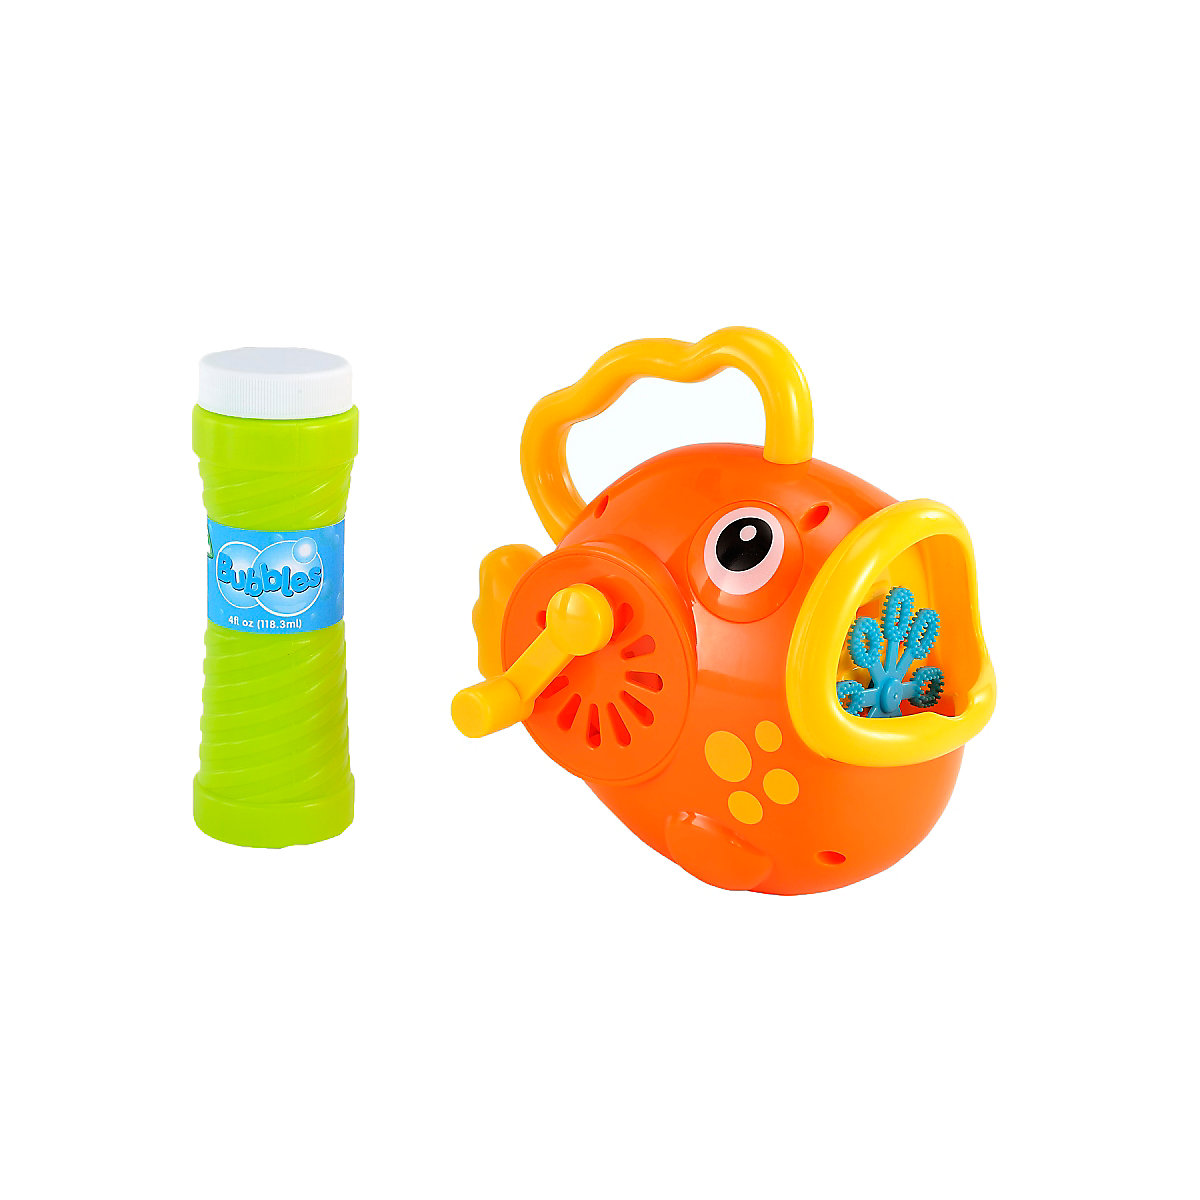 Wind Up Bubble Fish Toy From 3 years